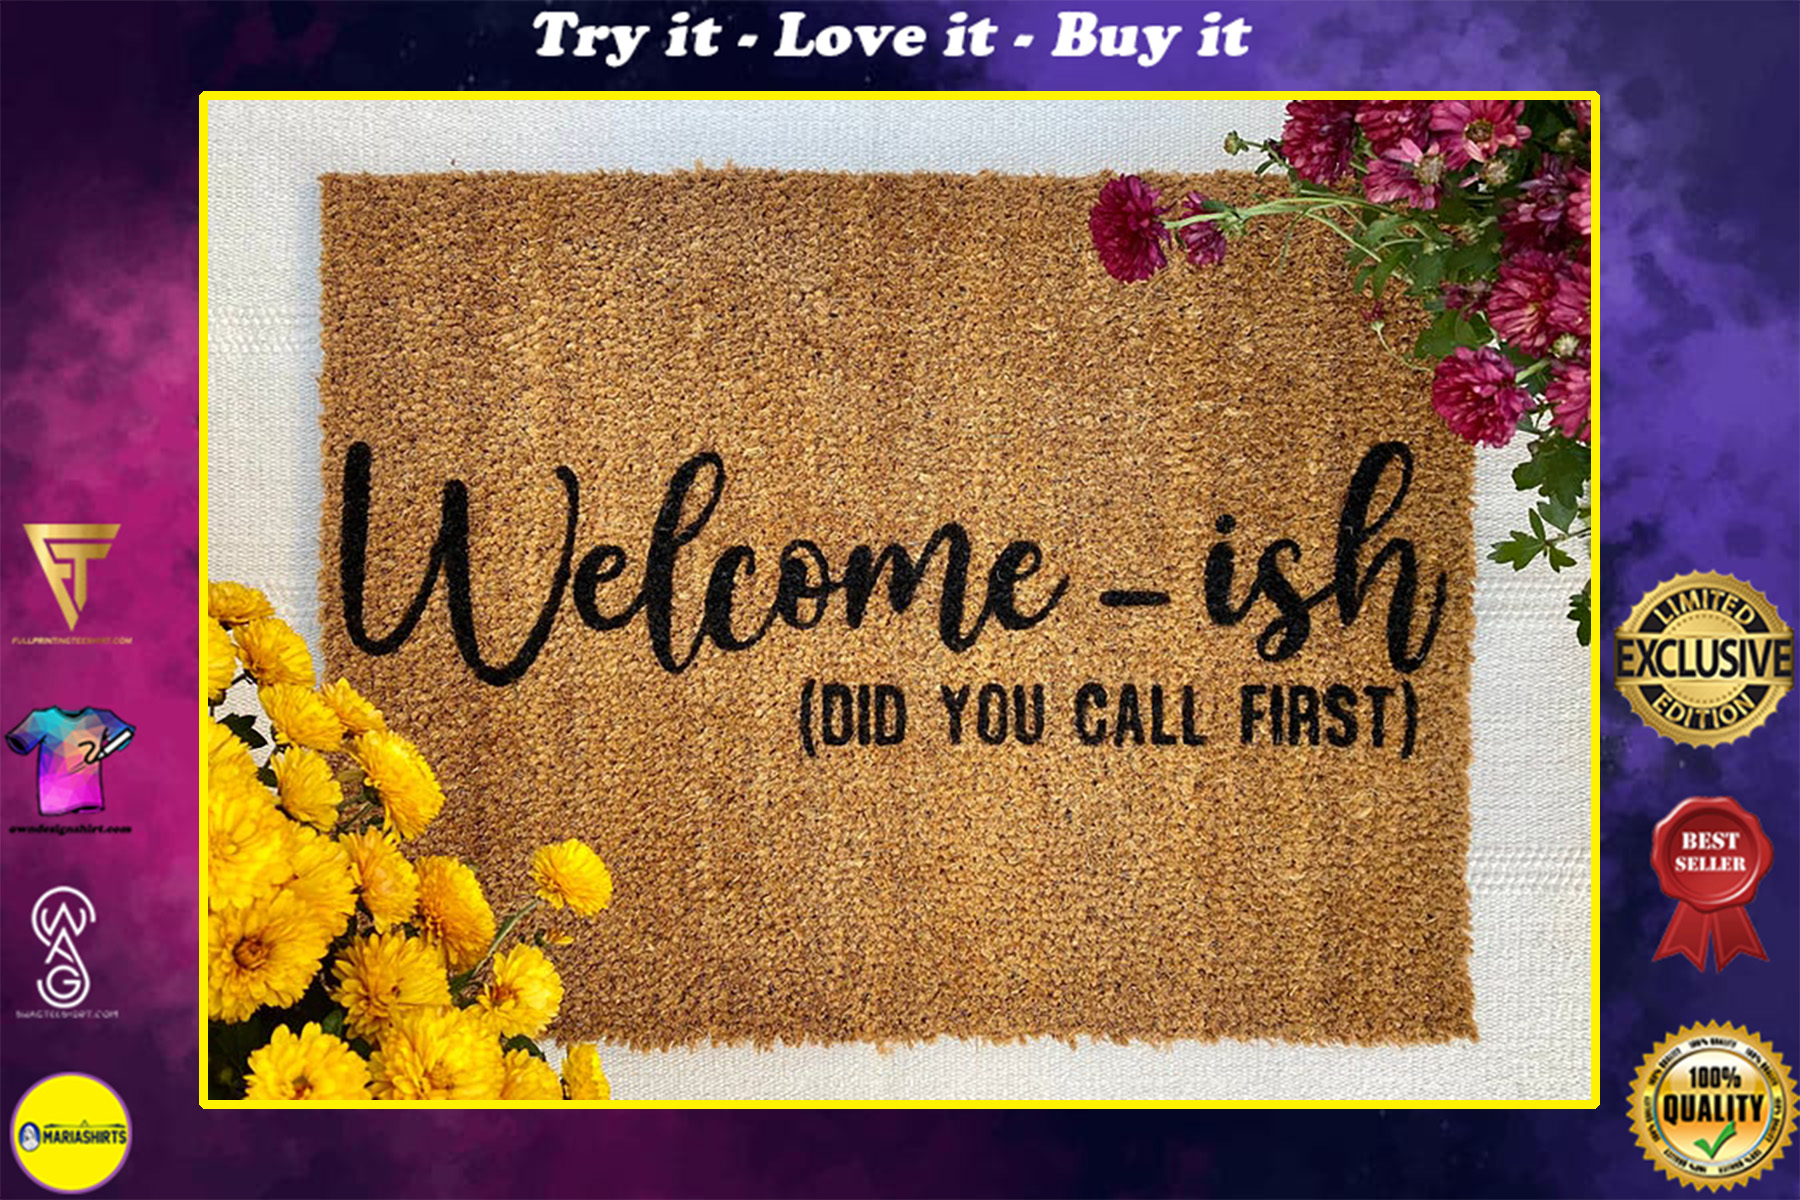 welcome-ish did you call first all over print doormat